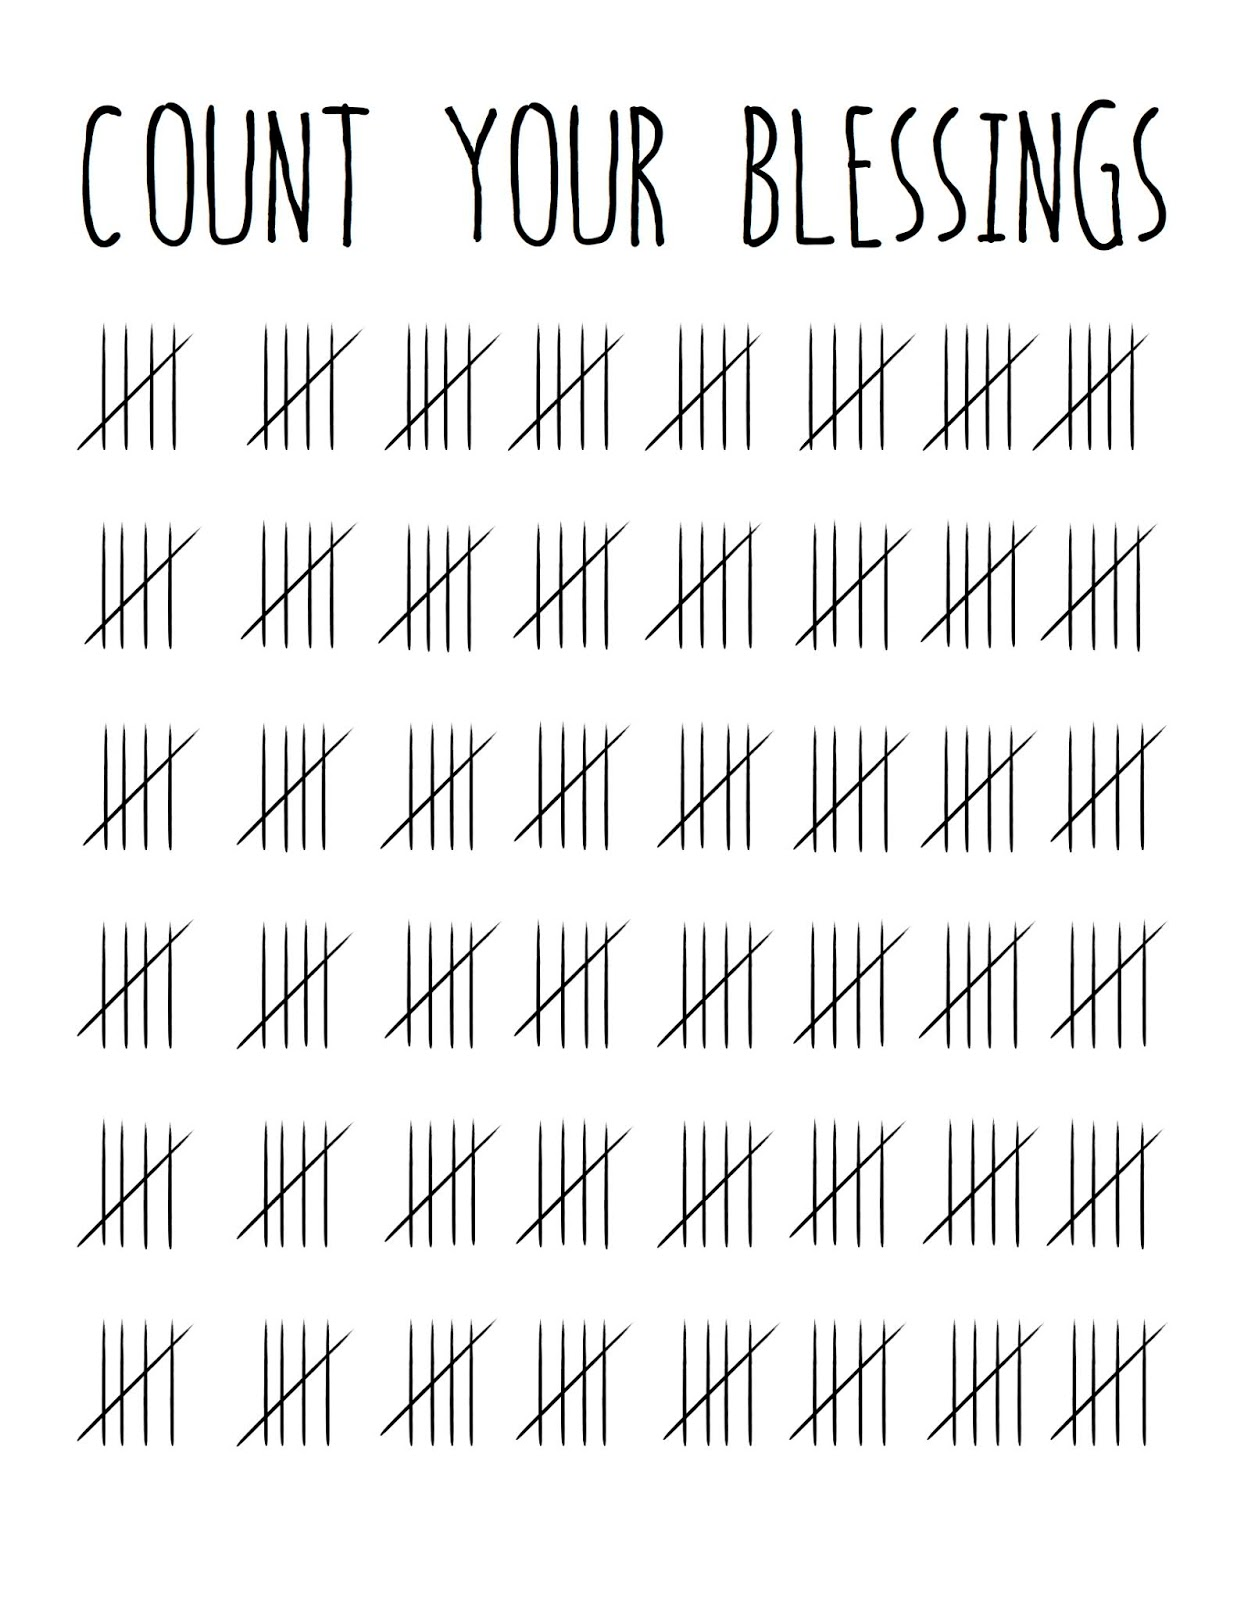 Grey Birch Designs Free Count Your Blessings Printable